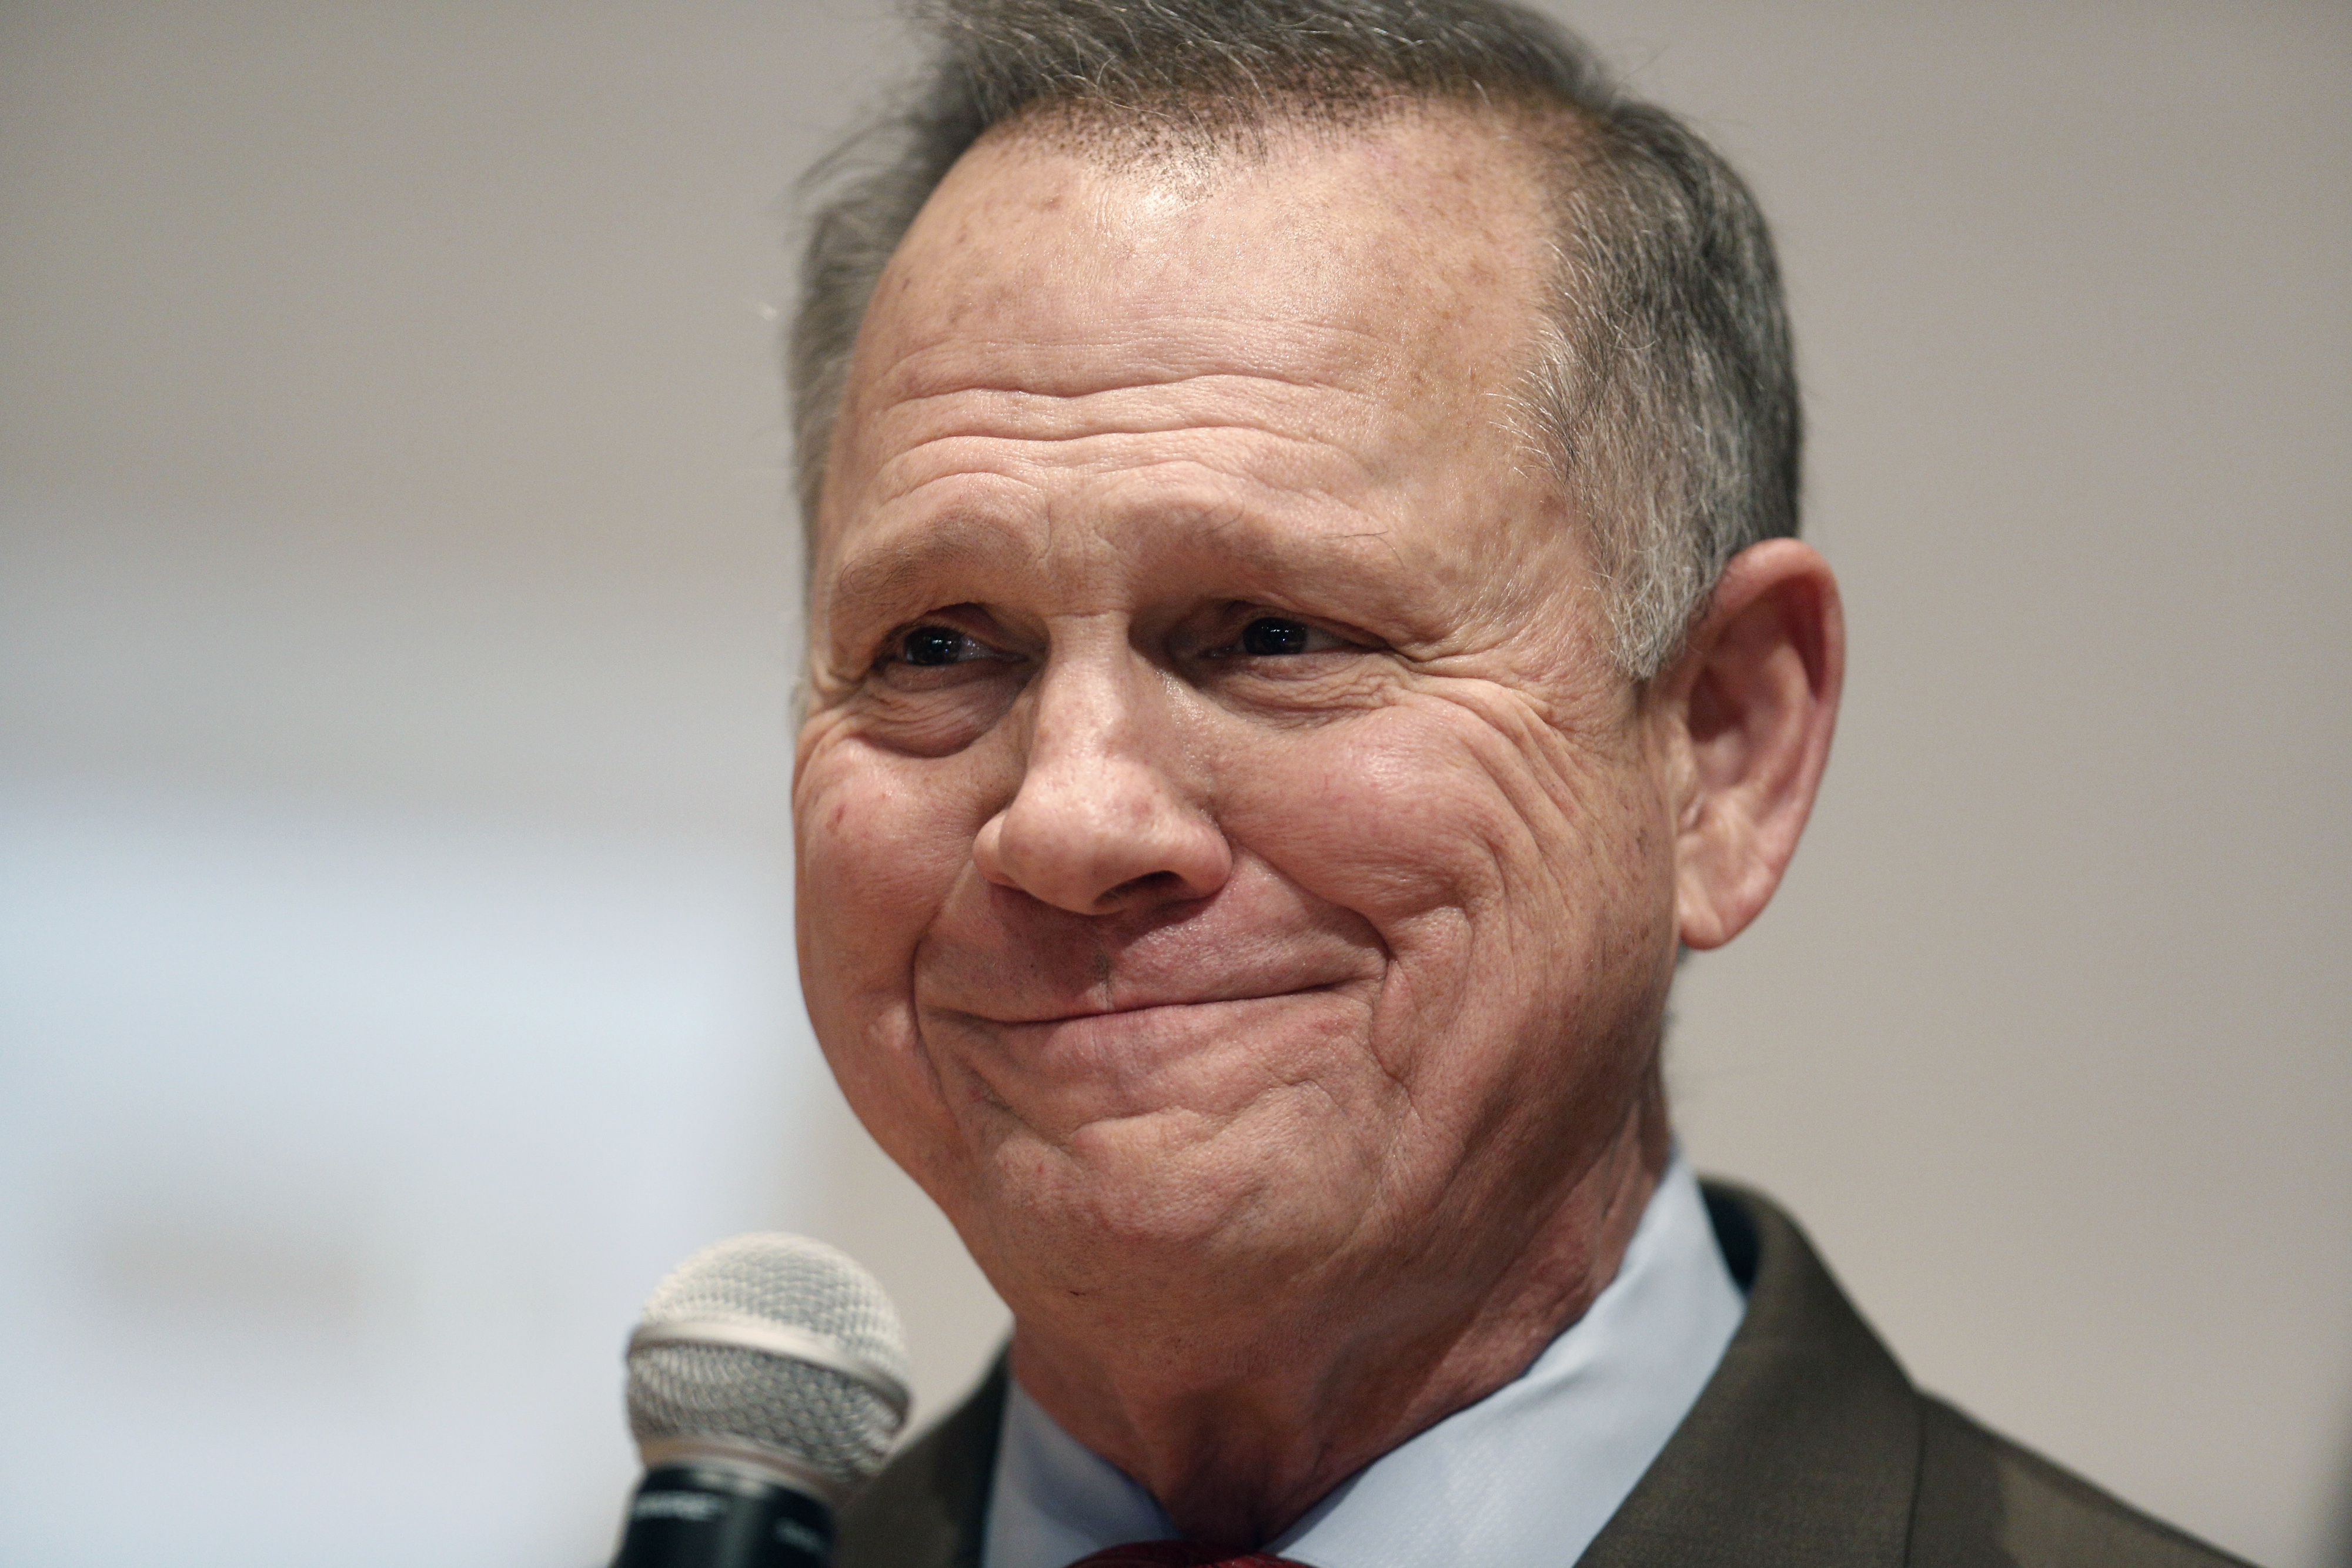 Roy Moore, a Republican from Alabama, pauses while speaking during an election night party in Montgomery, Alabama, on Dec. 12, 2017.